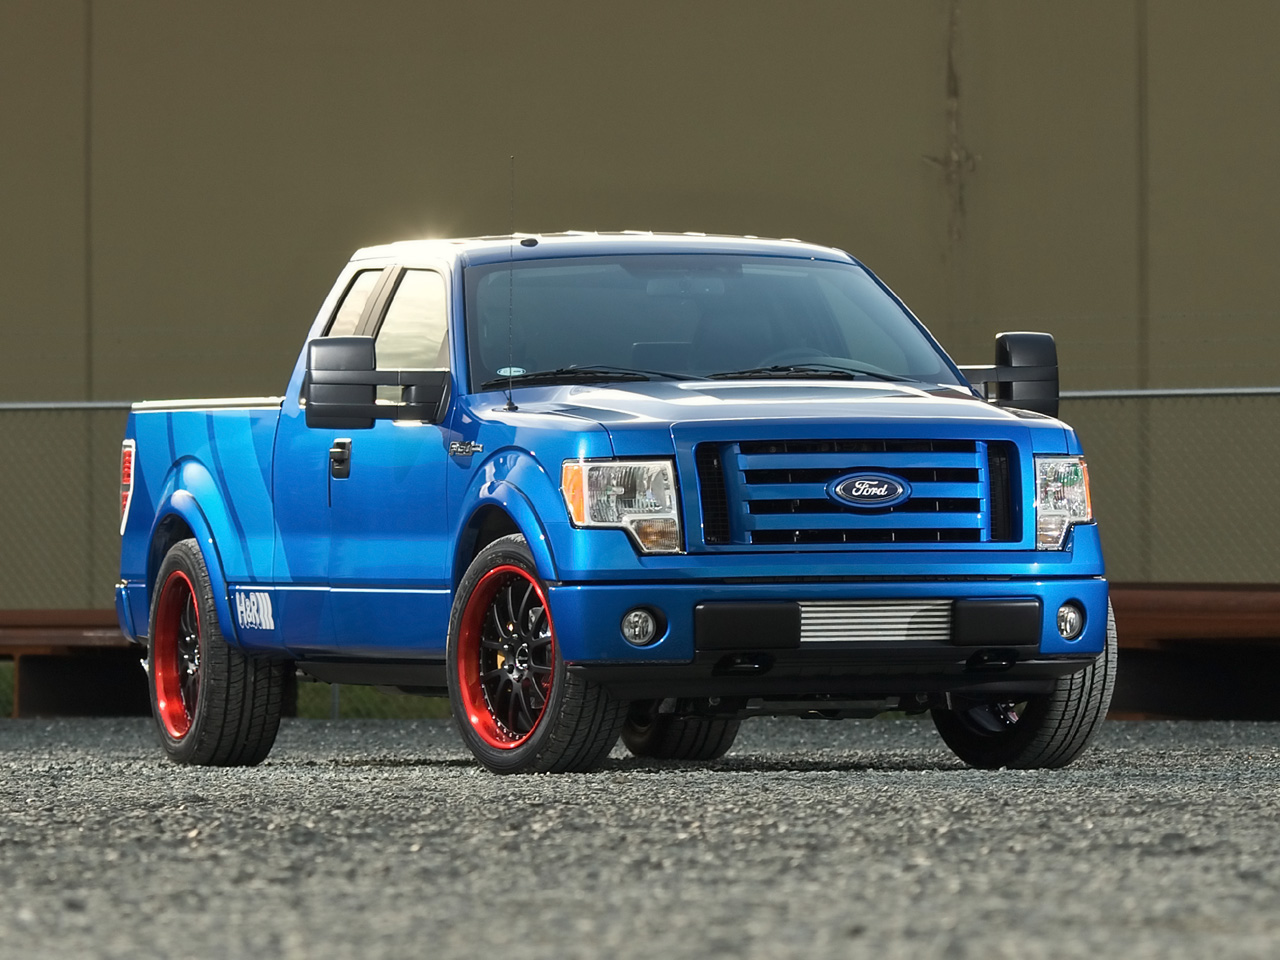 Ford f-150 1989 photo - 5